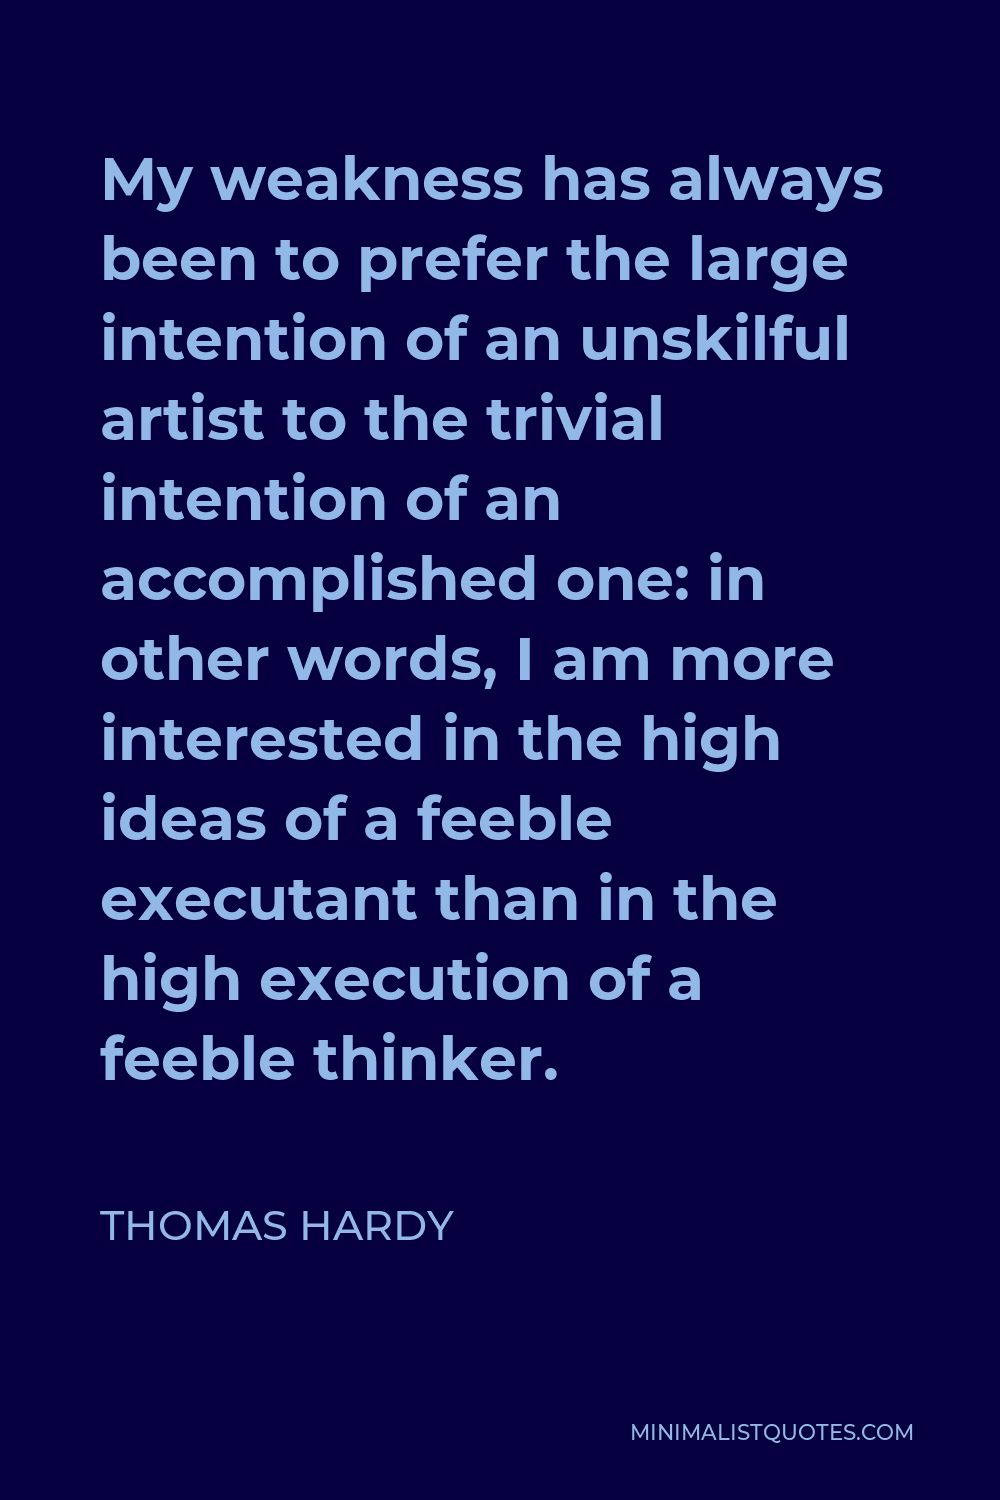 Thomas Hardy Quote - My weakness has always been to prefer the large intention of an unskilful artist to the trivial intention of an accomplished one: in other words, I am more interested in the high ideas of a feeble executant than in the high execution of a feeble thinker.